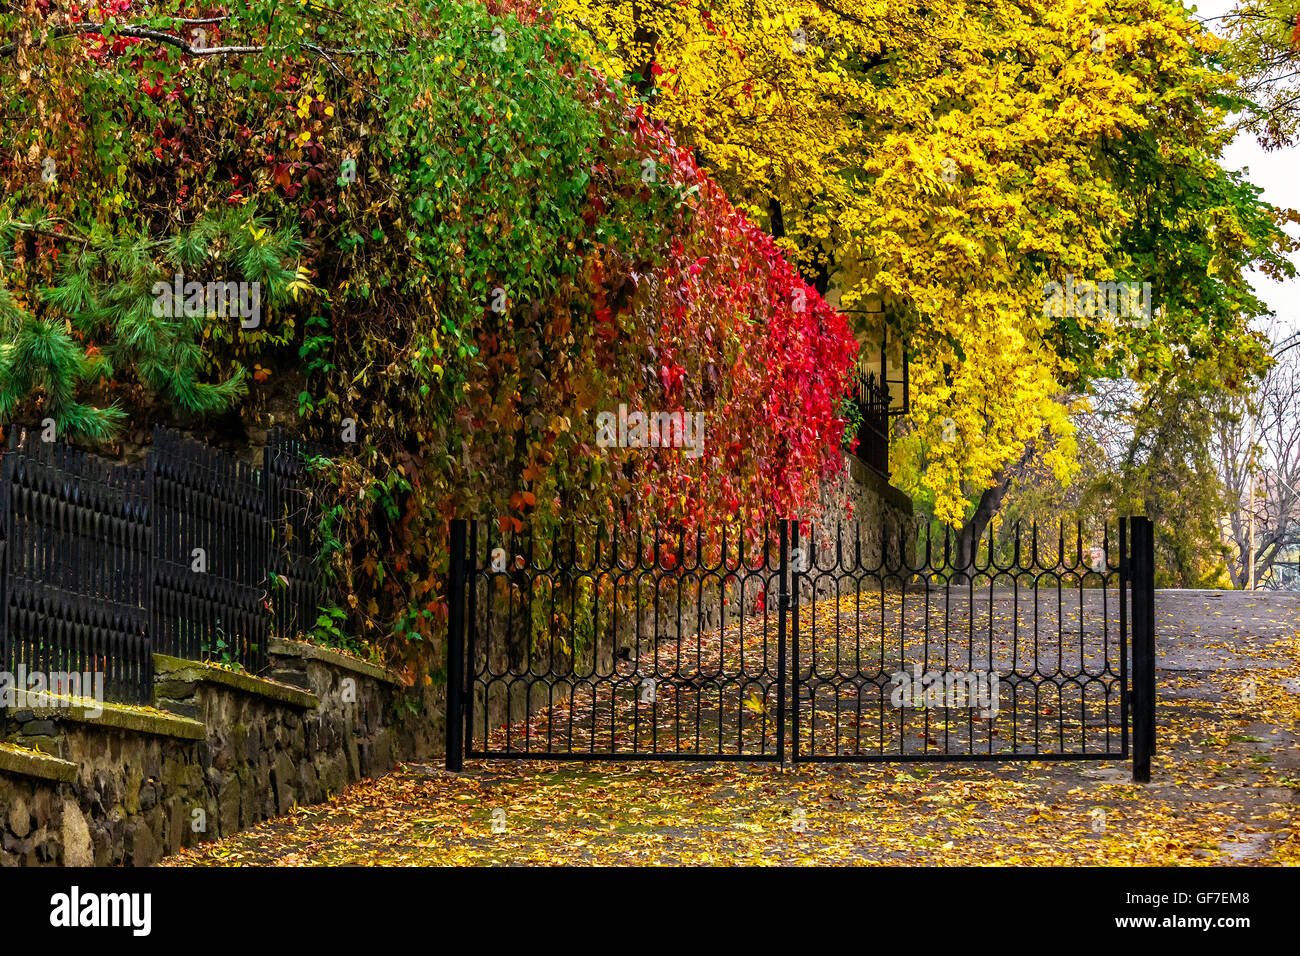 wet cobblestone street after rain stockfotos wet cobblestone street after rain bilder alamy. Black Bedroom Furniture Sets. Home Design Ideas